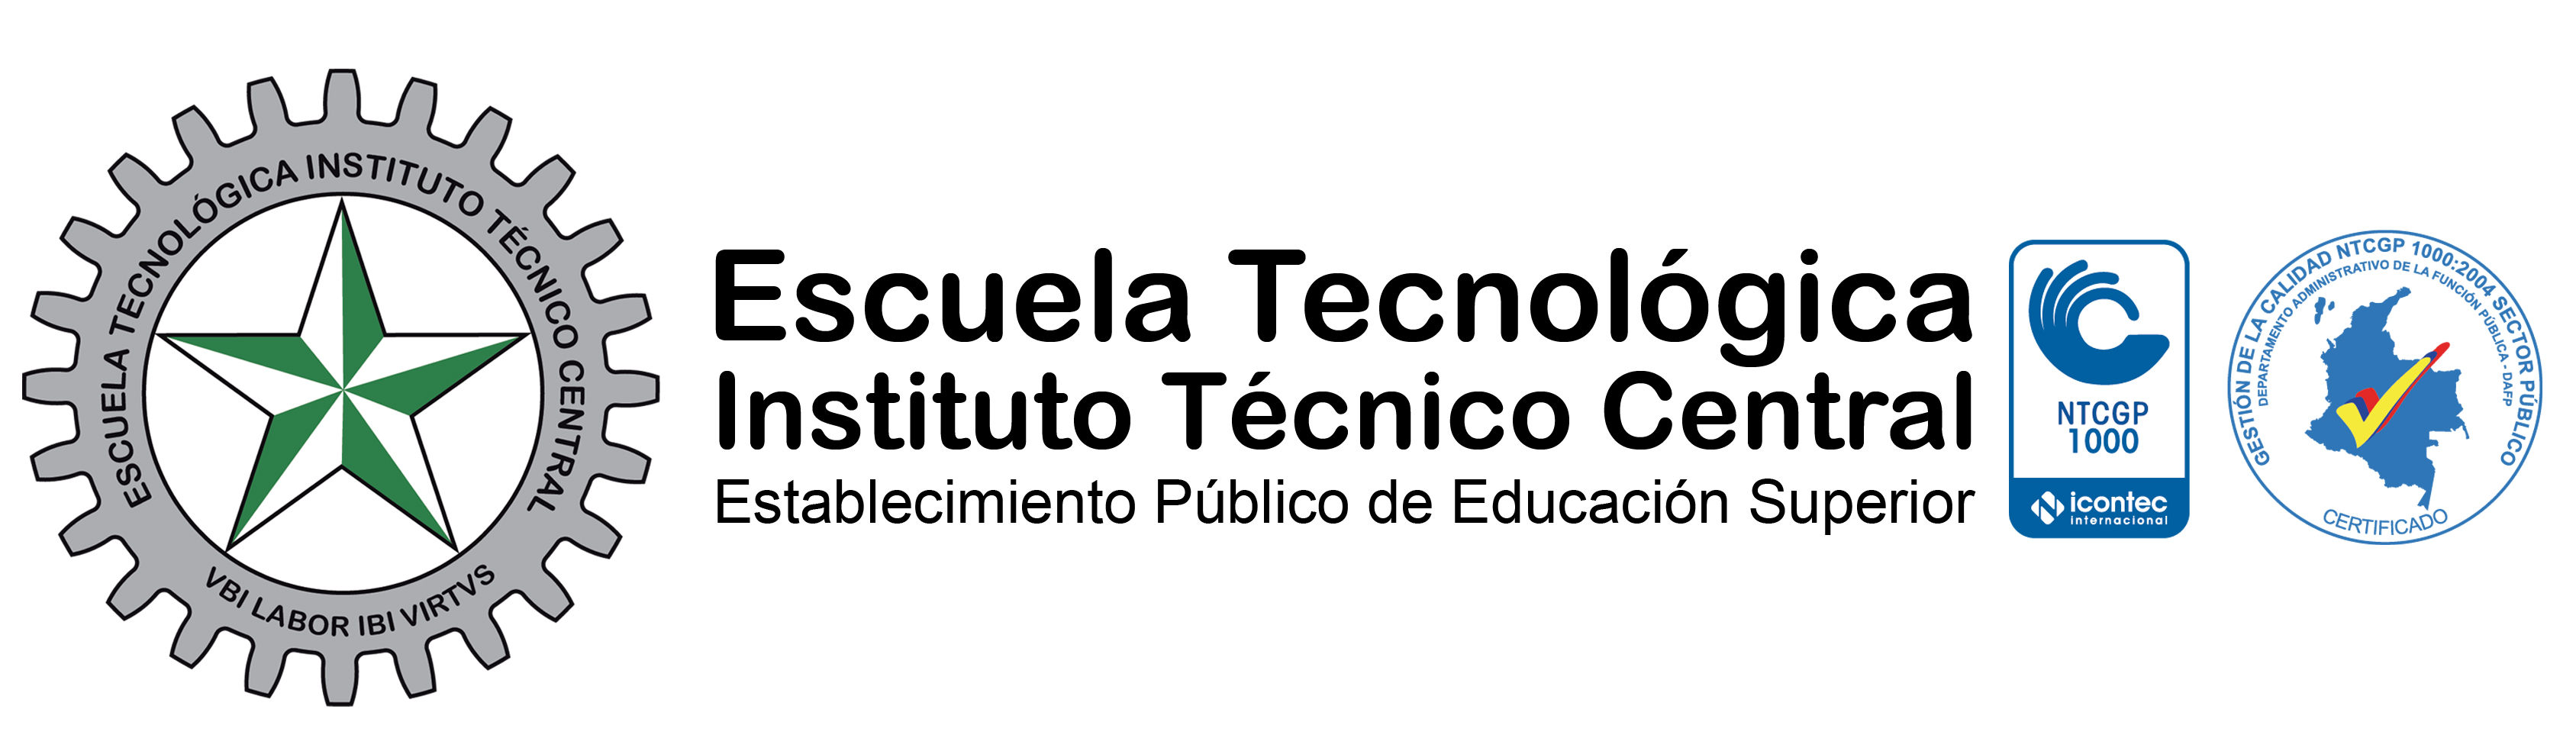 Escuela Tecnológica Instituto Técnico Central